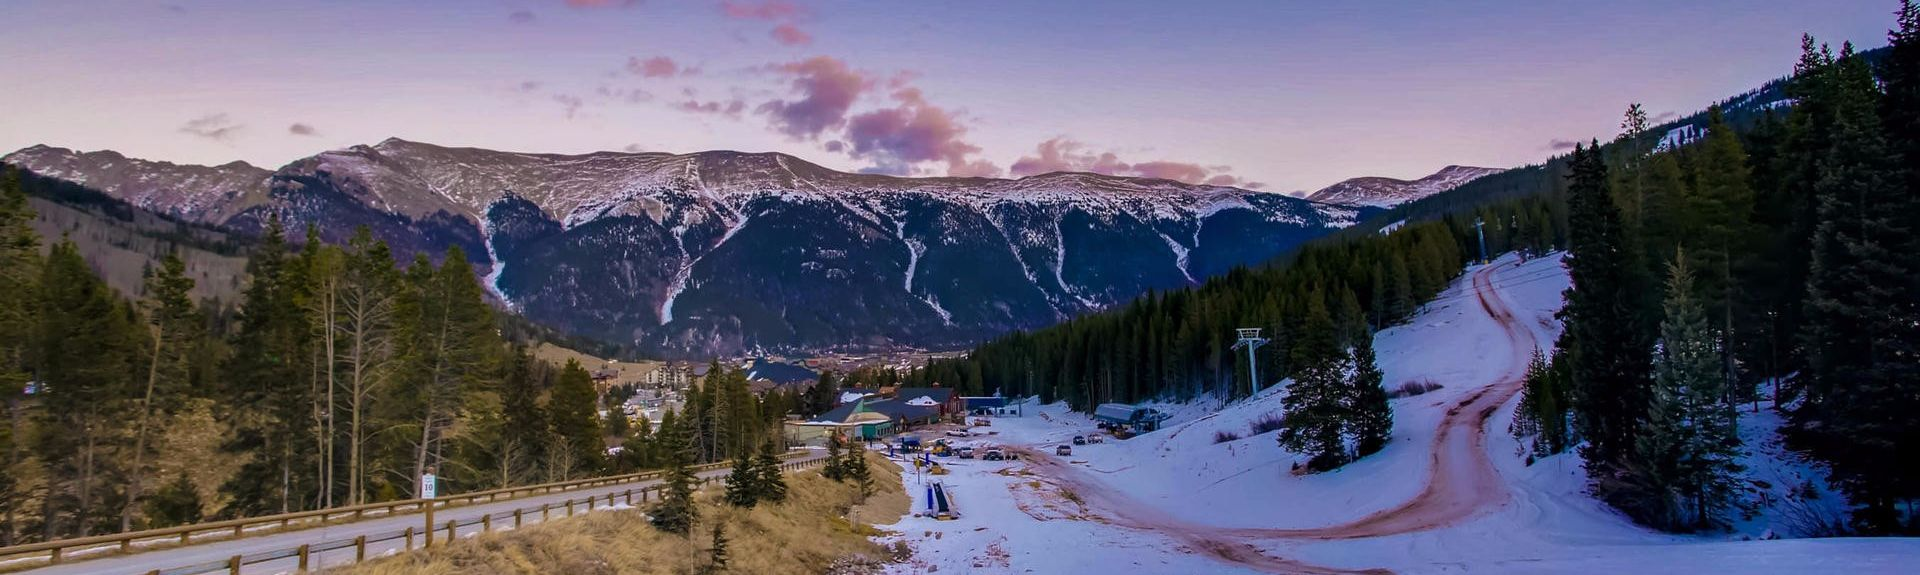 Lewis Ranch (Copper Mountain, Colorado, United States)